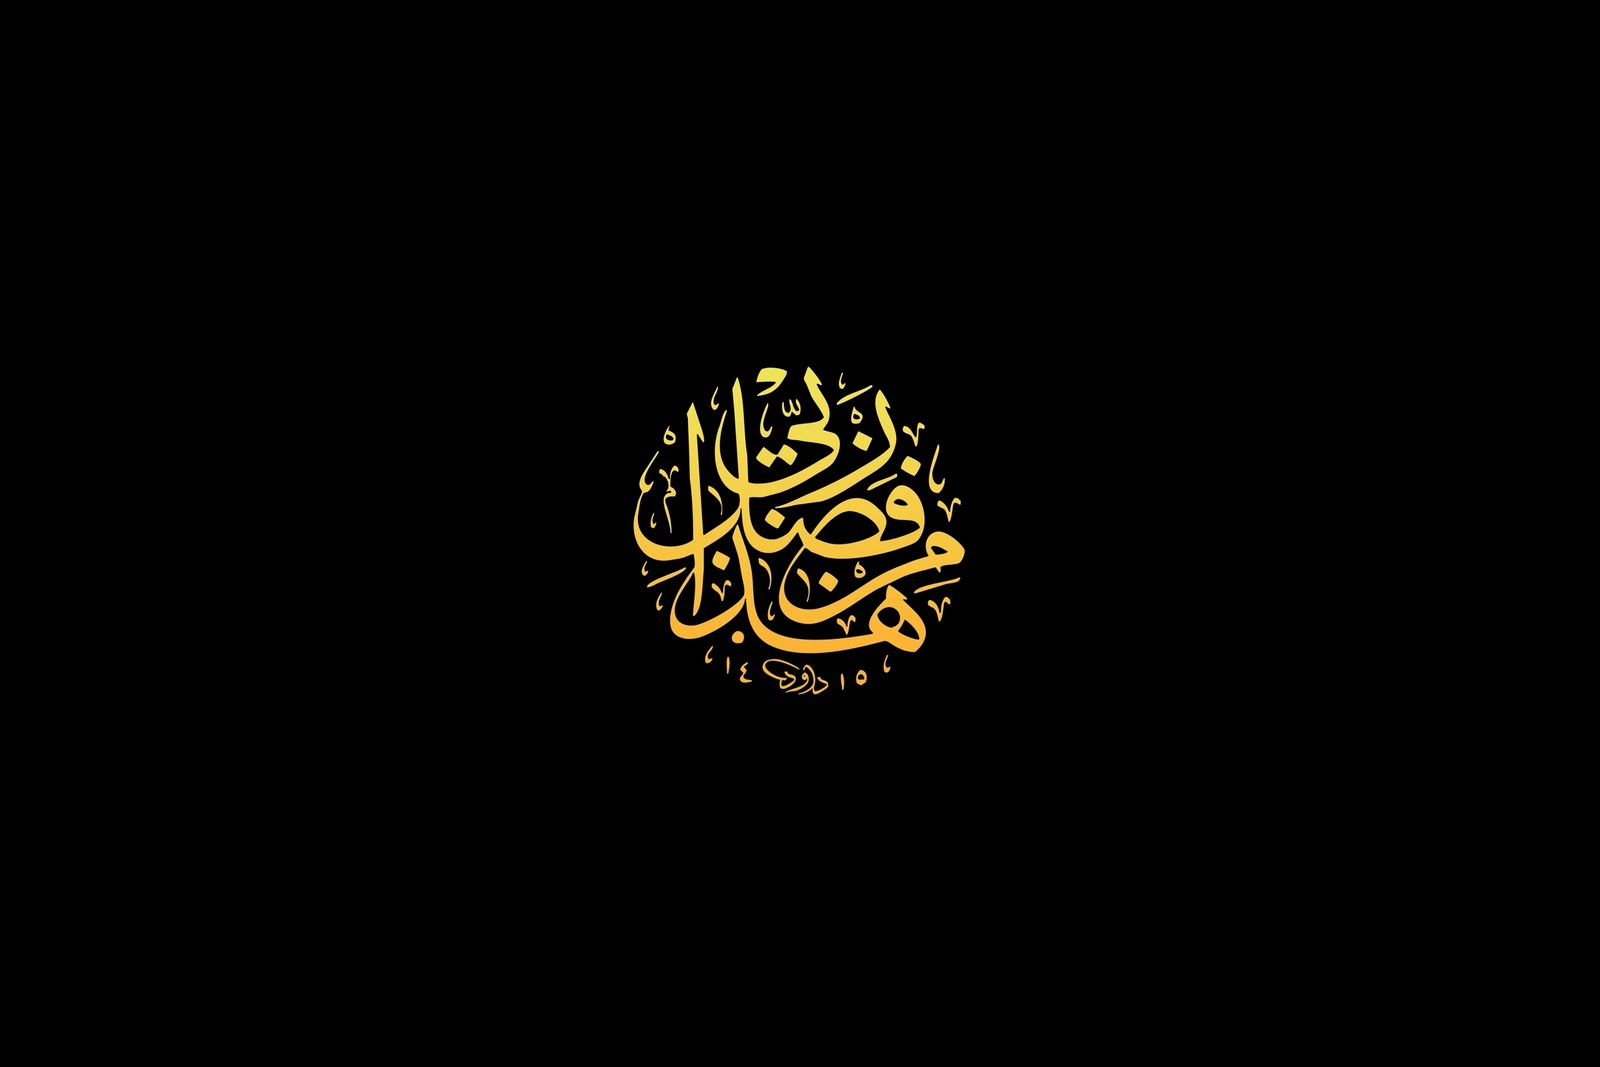 ISLAM THE PERFECT RELIGION: Best Islamic Calligraphy Wallpapers ...